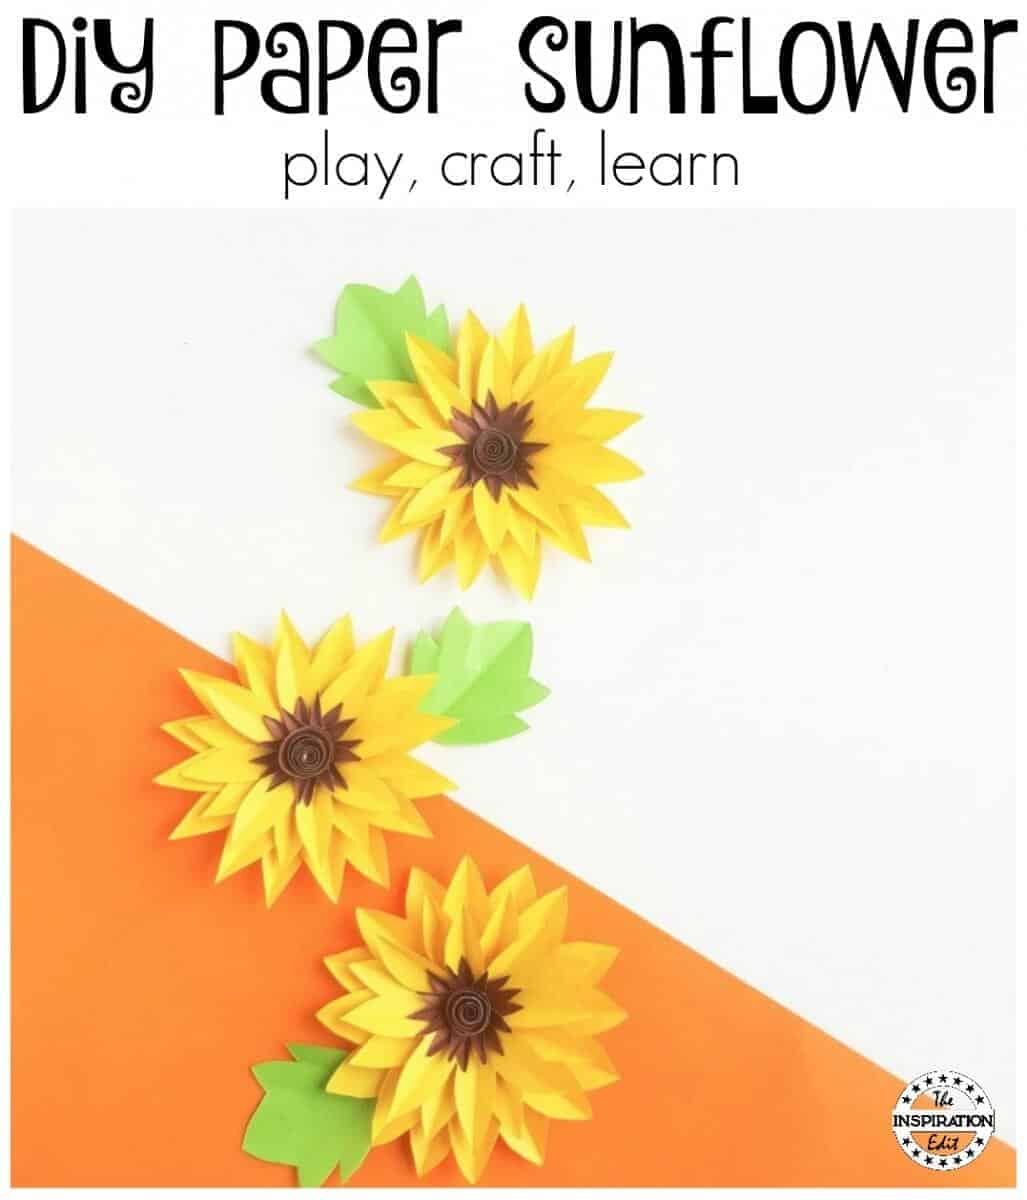 Diy paper sunflower craft for kids the inspiration edit diy paper sunflower craft for kids mightylinksfo